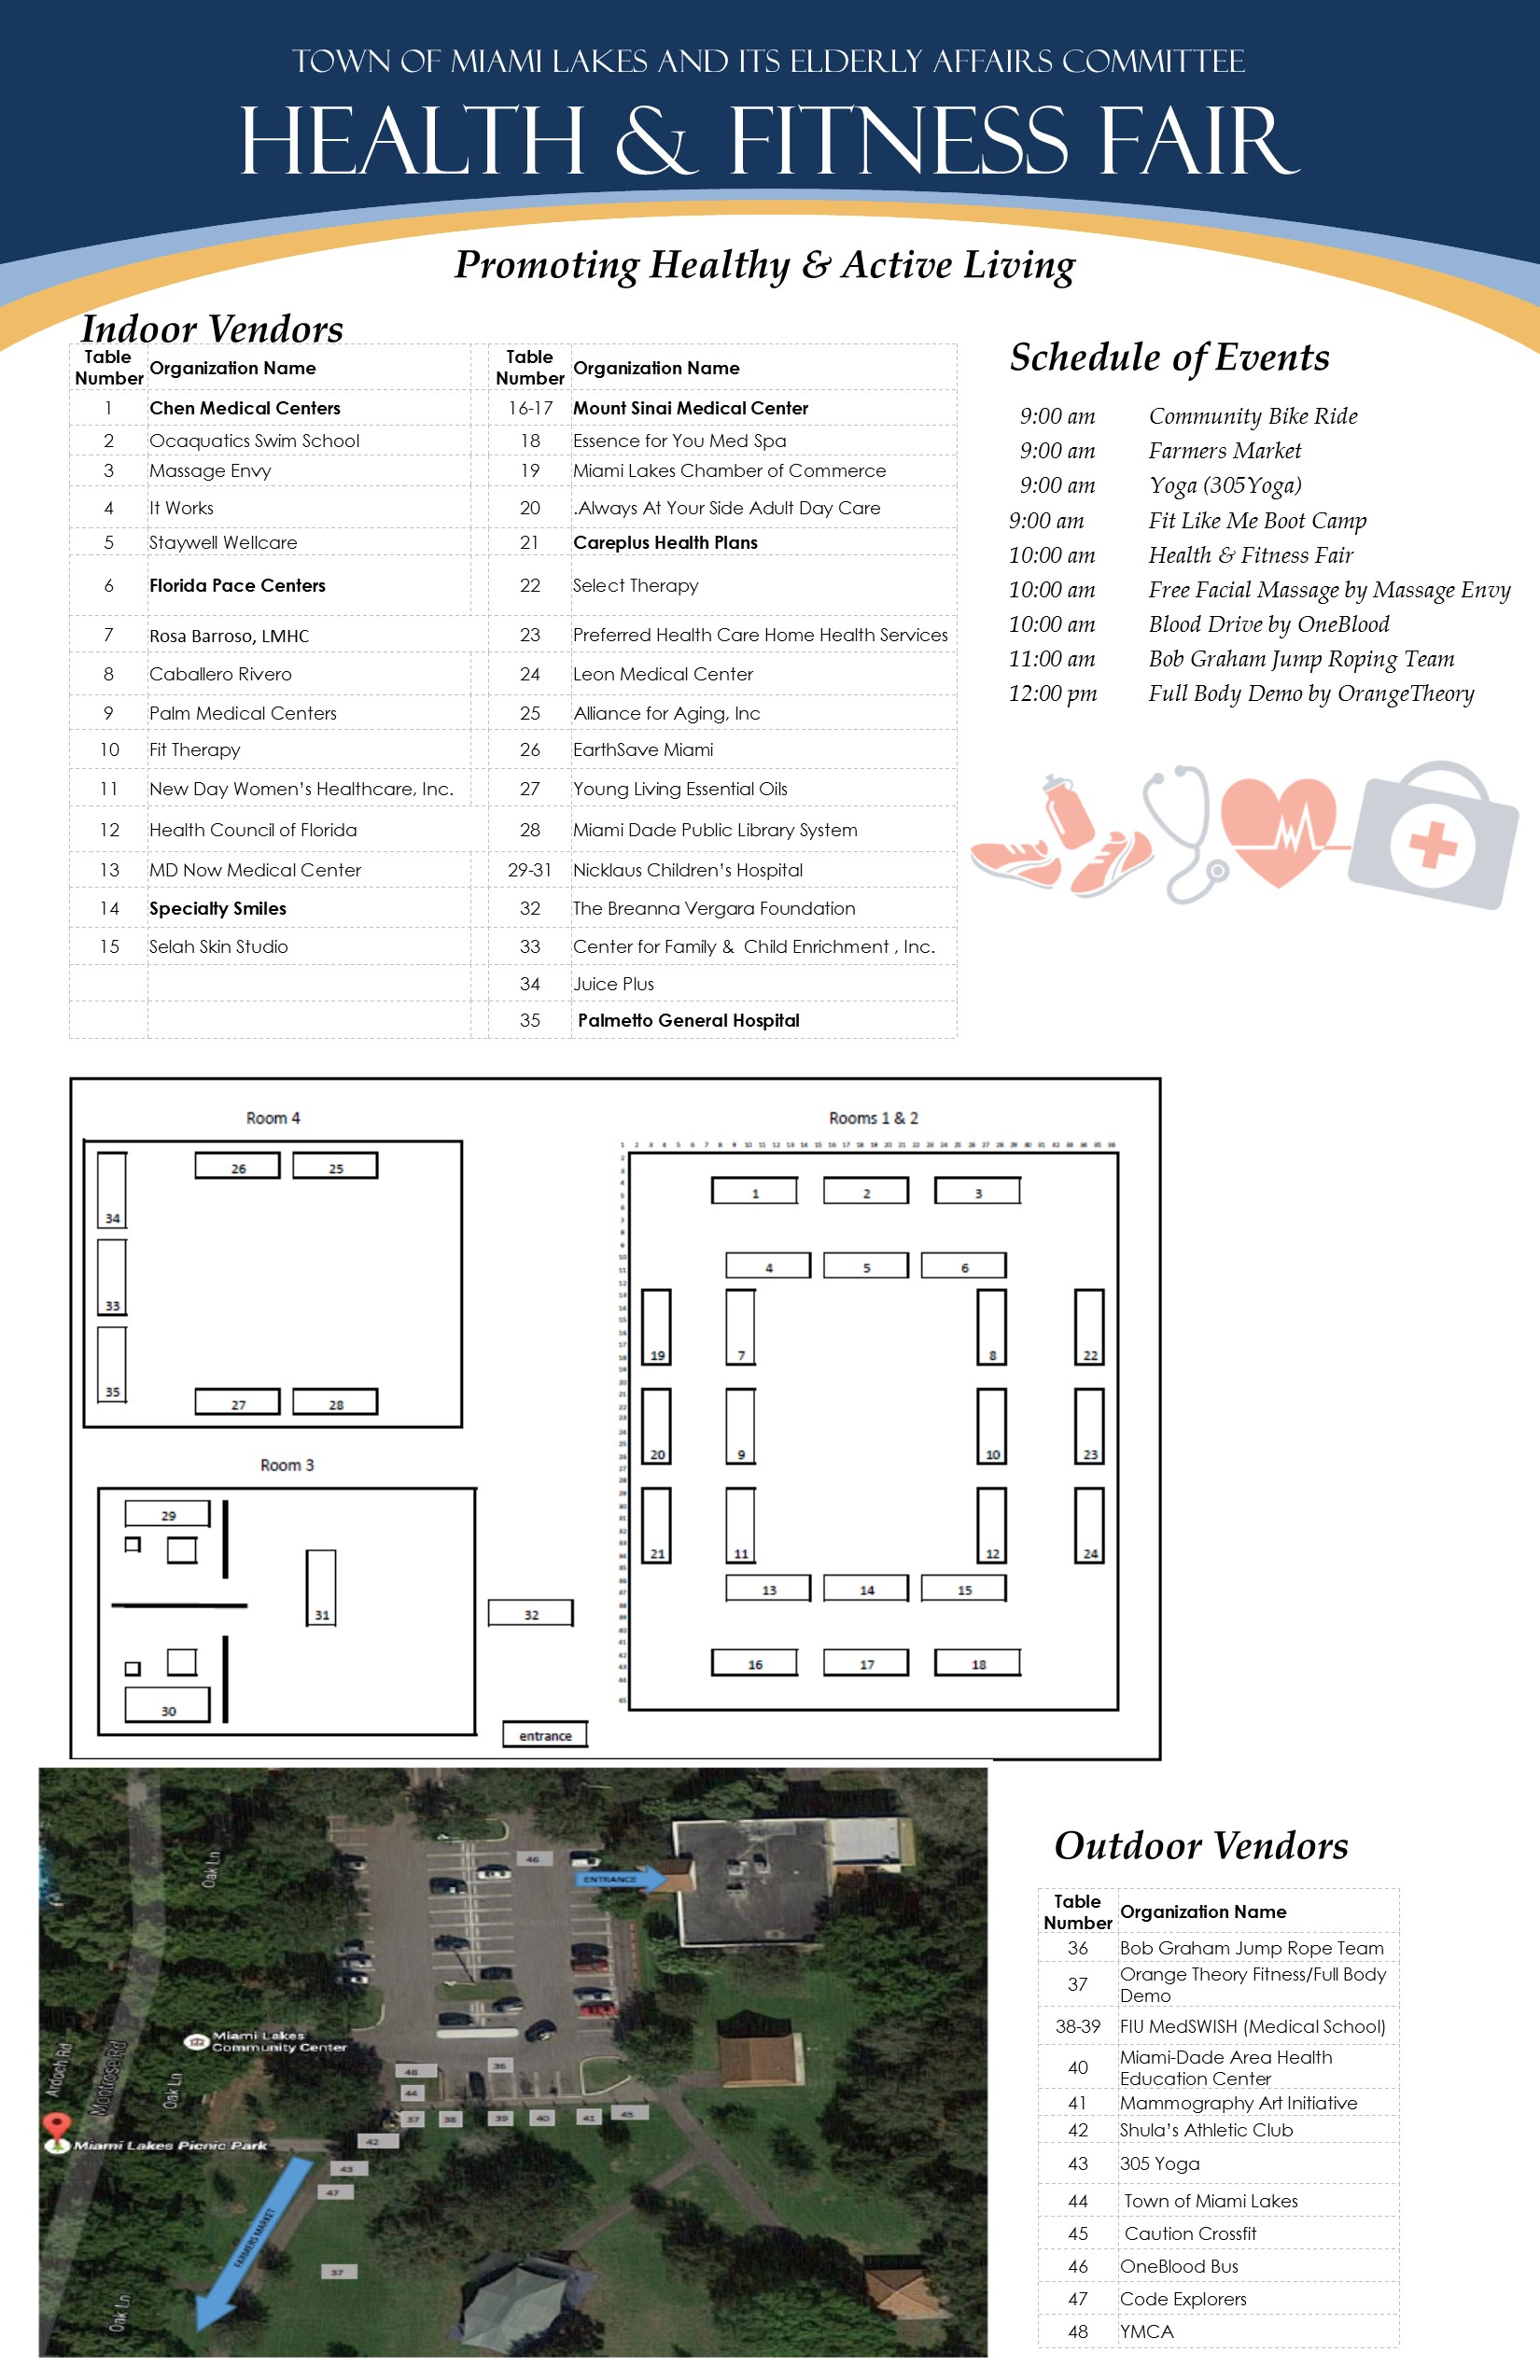 Health Fitness Fair Flyer floor plan flyer 2018